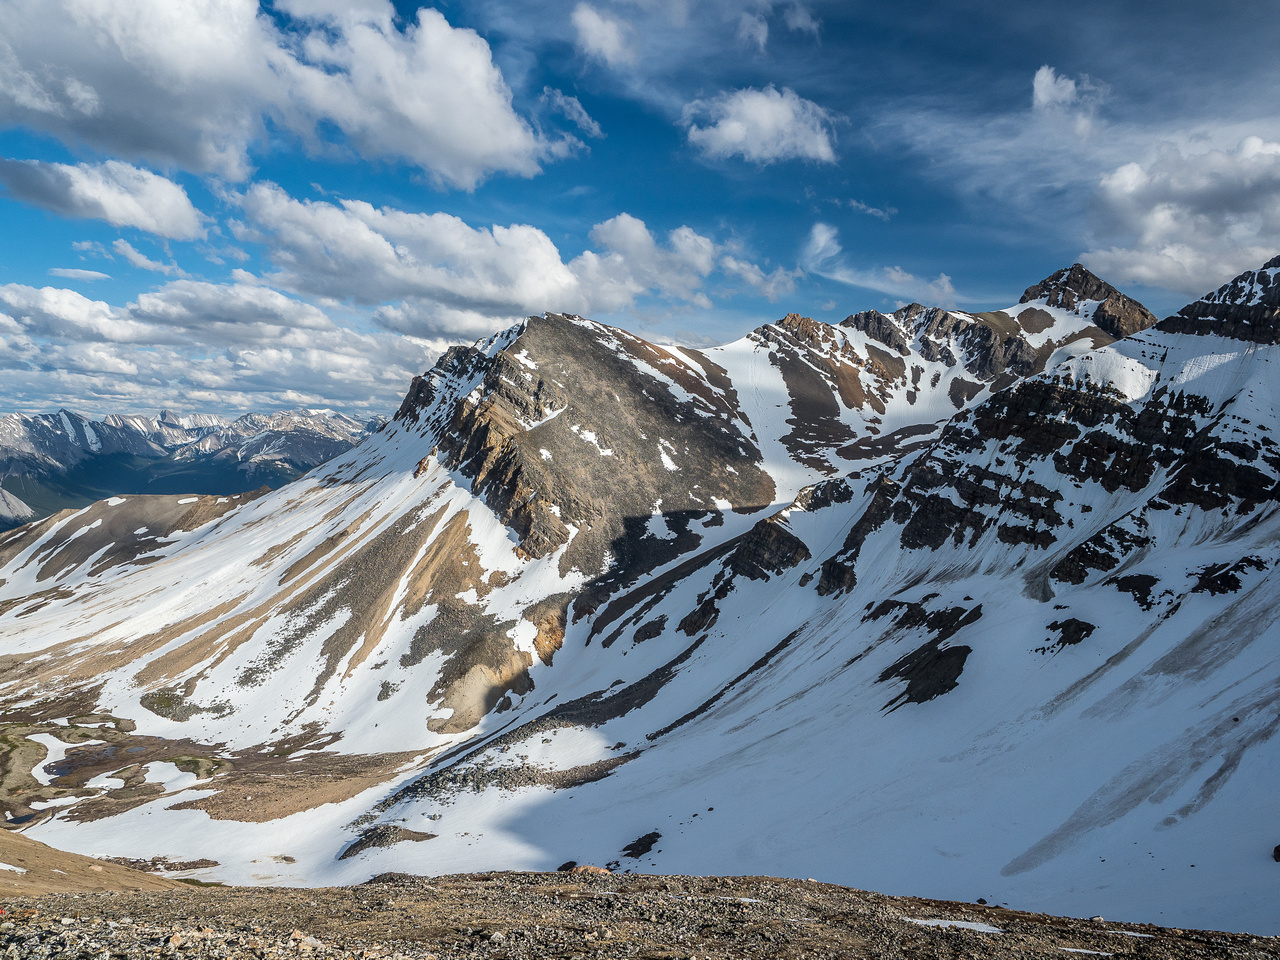 Looking over at the impressive form of Whirlpool Ridge.